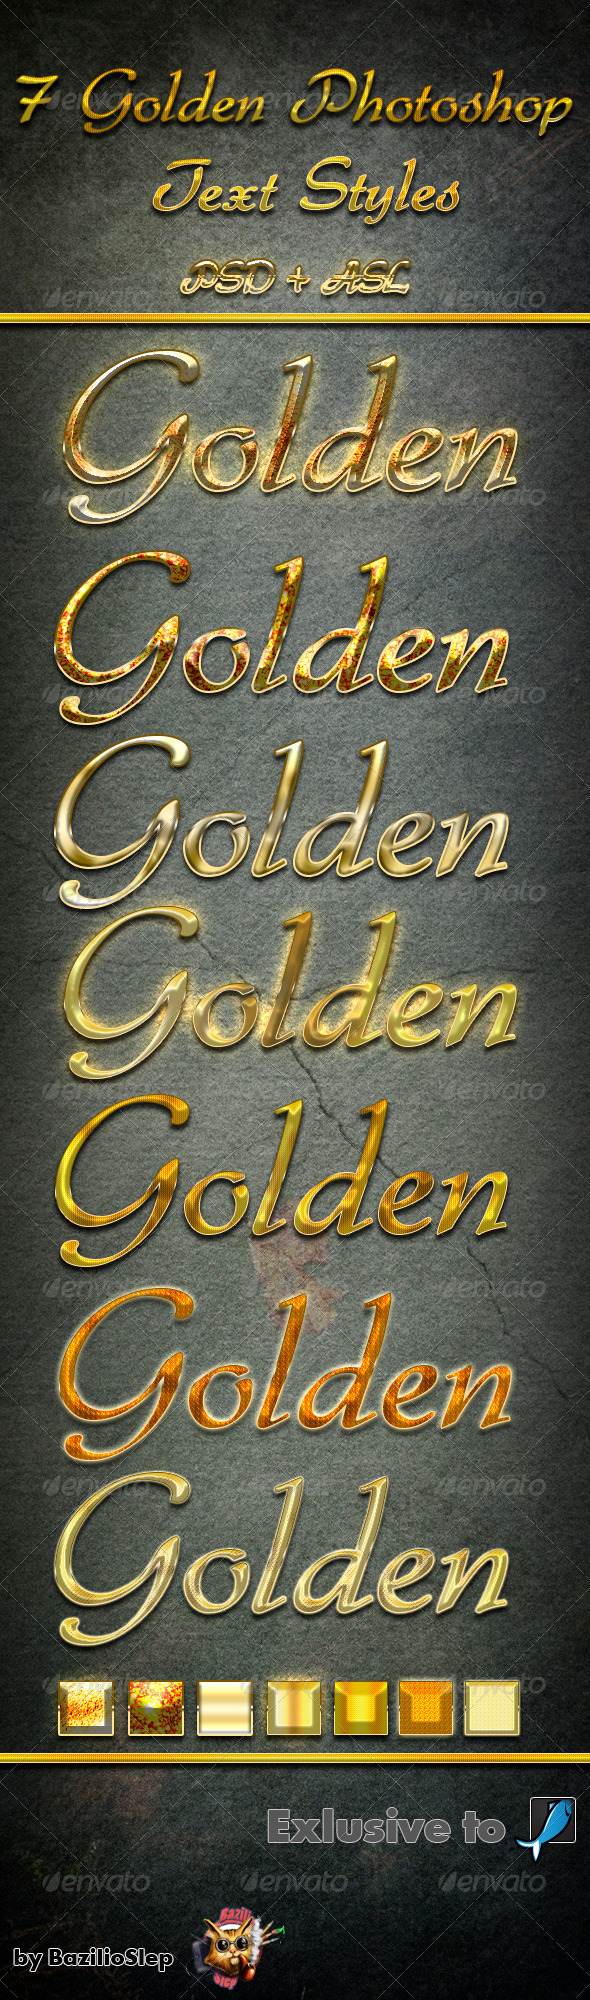 GraphicRiver 7 Golden Photoshop Text Styles 6382115